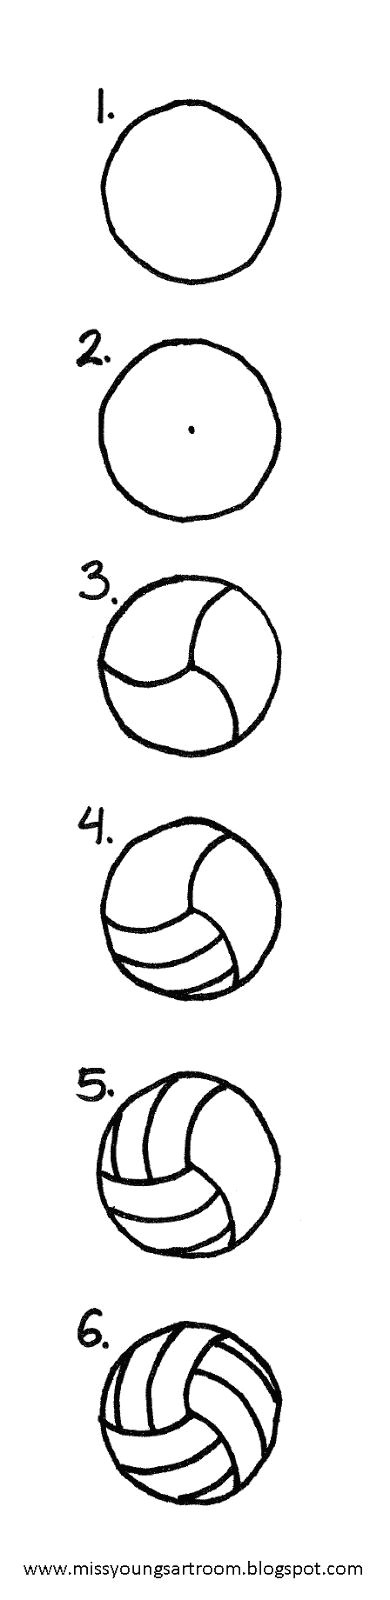 6632770c821afdae11d4242fe5a1ac07 volleyball cupcakes volleyball room jpg